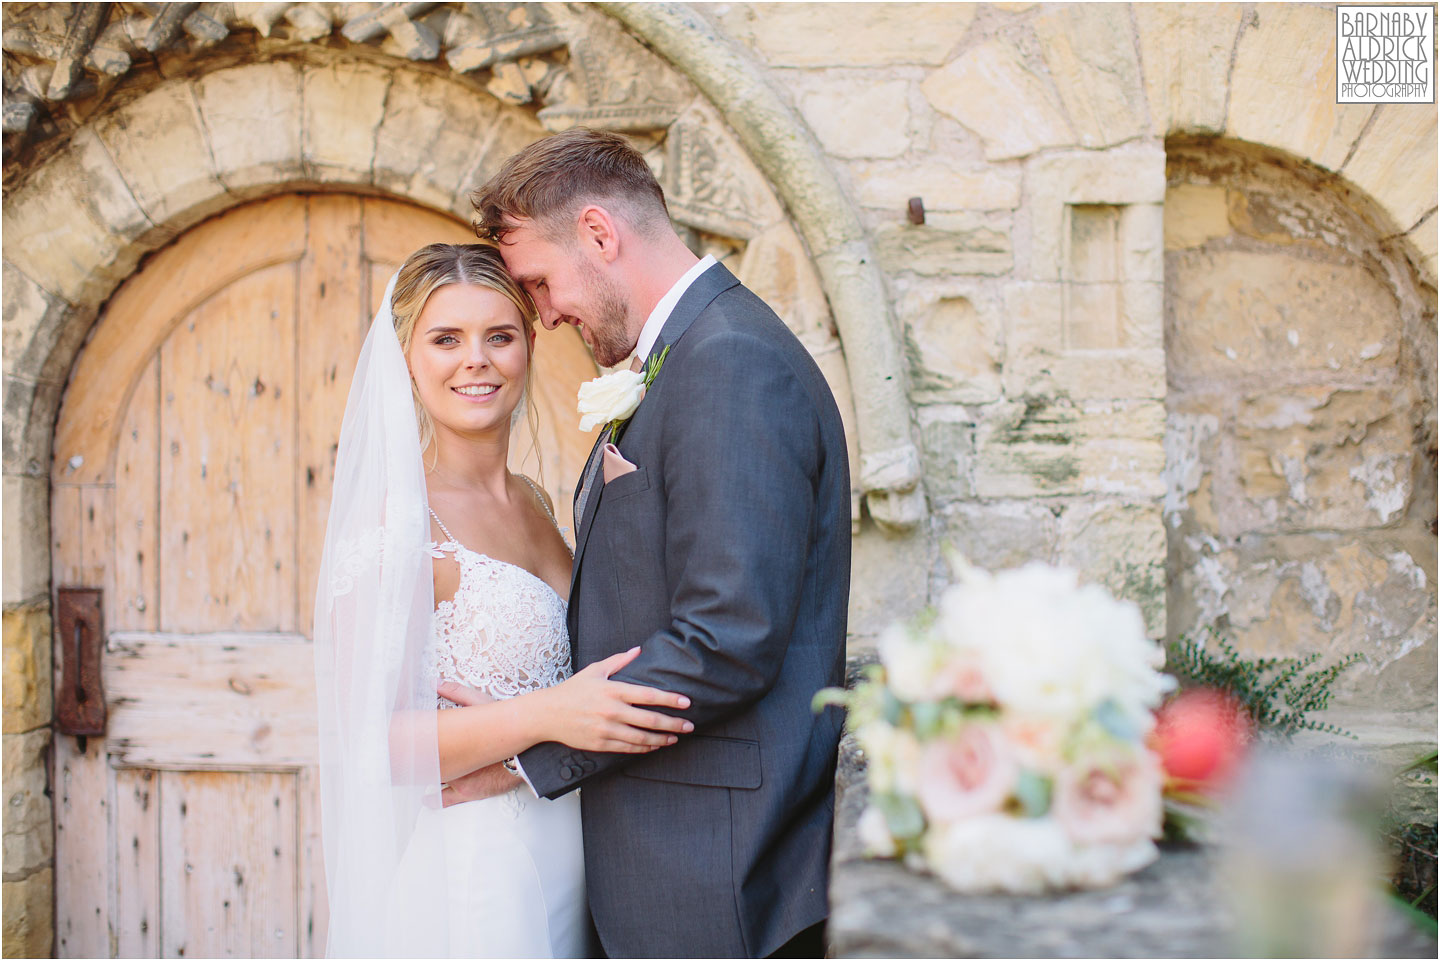 Wedding photography portraits at Priory Cottages near Wetherby in Yorkshire